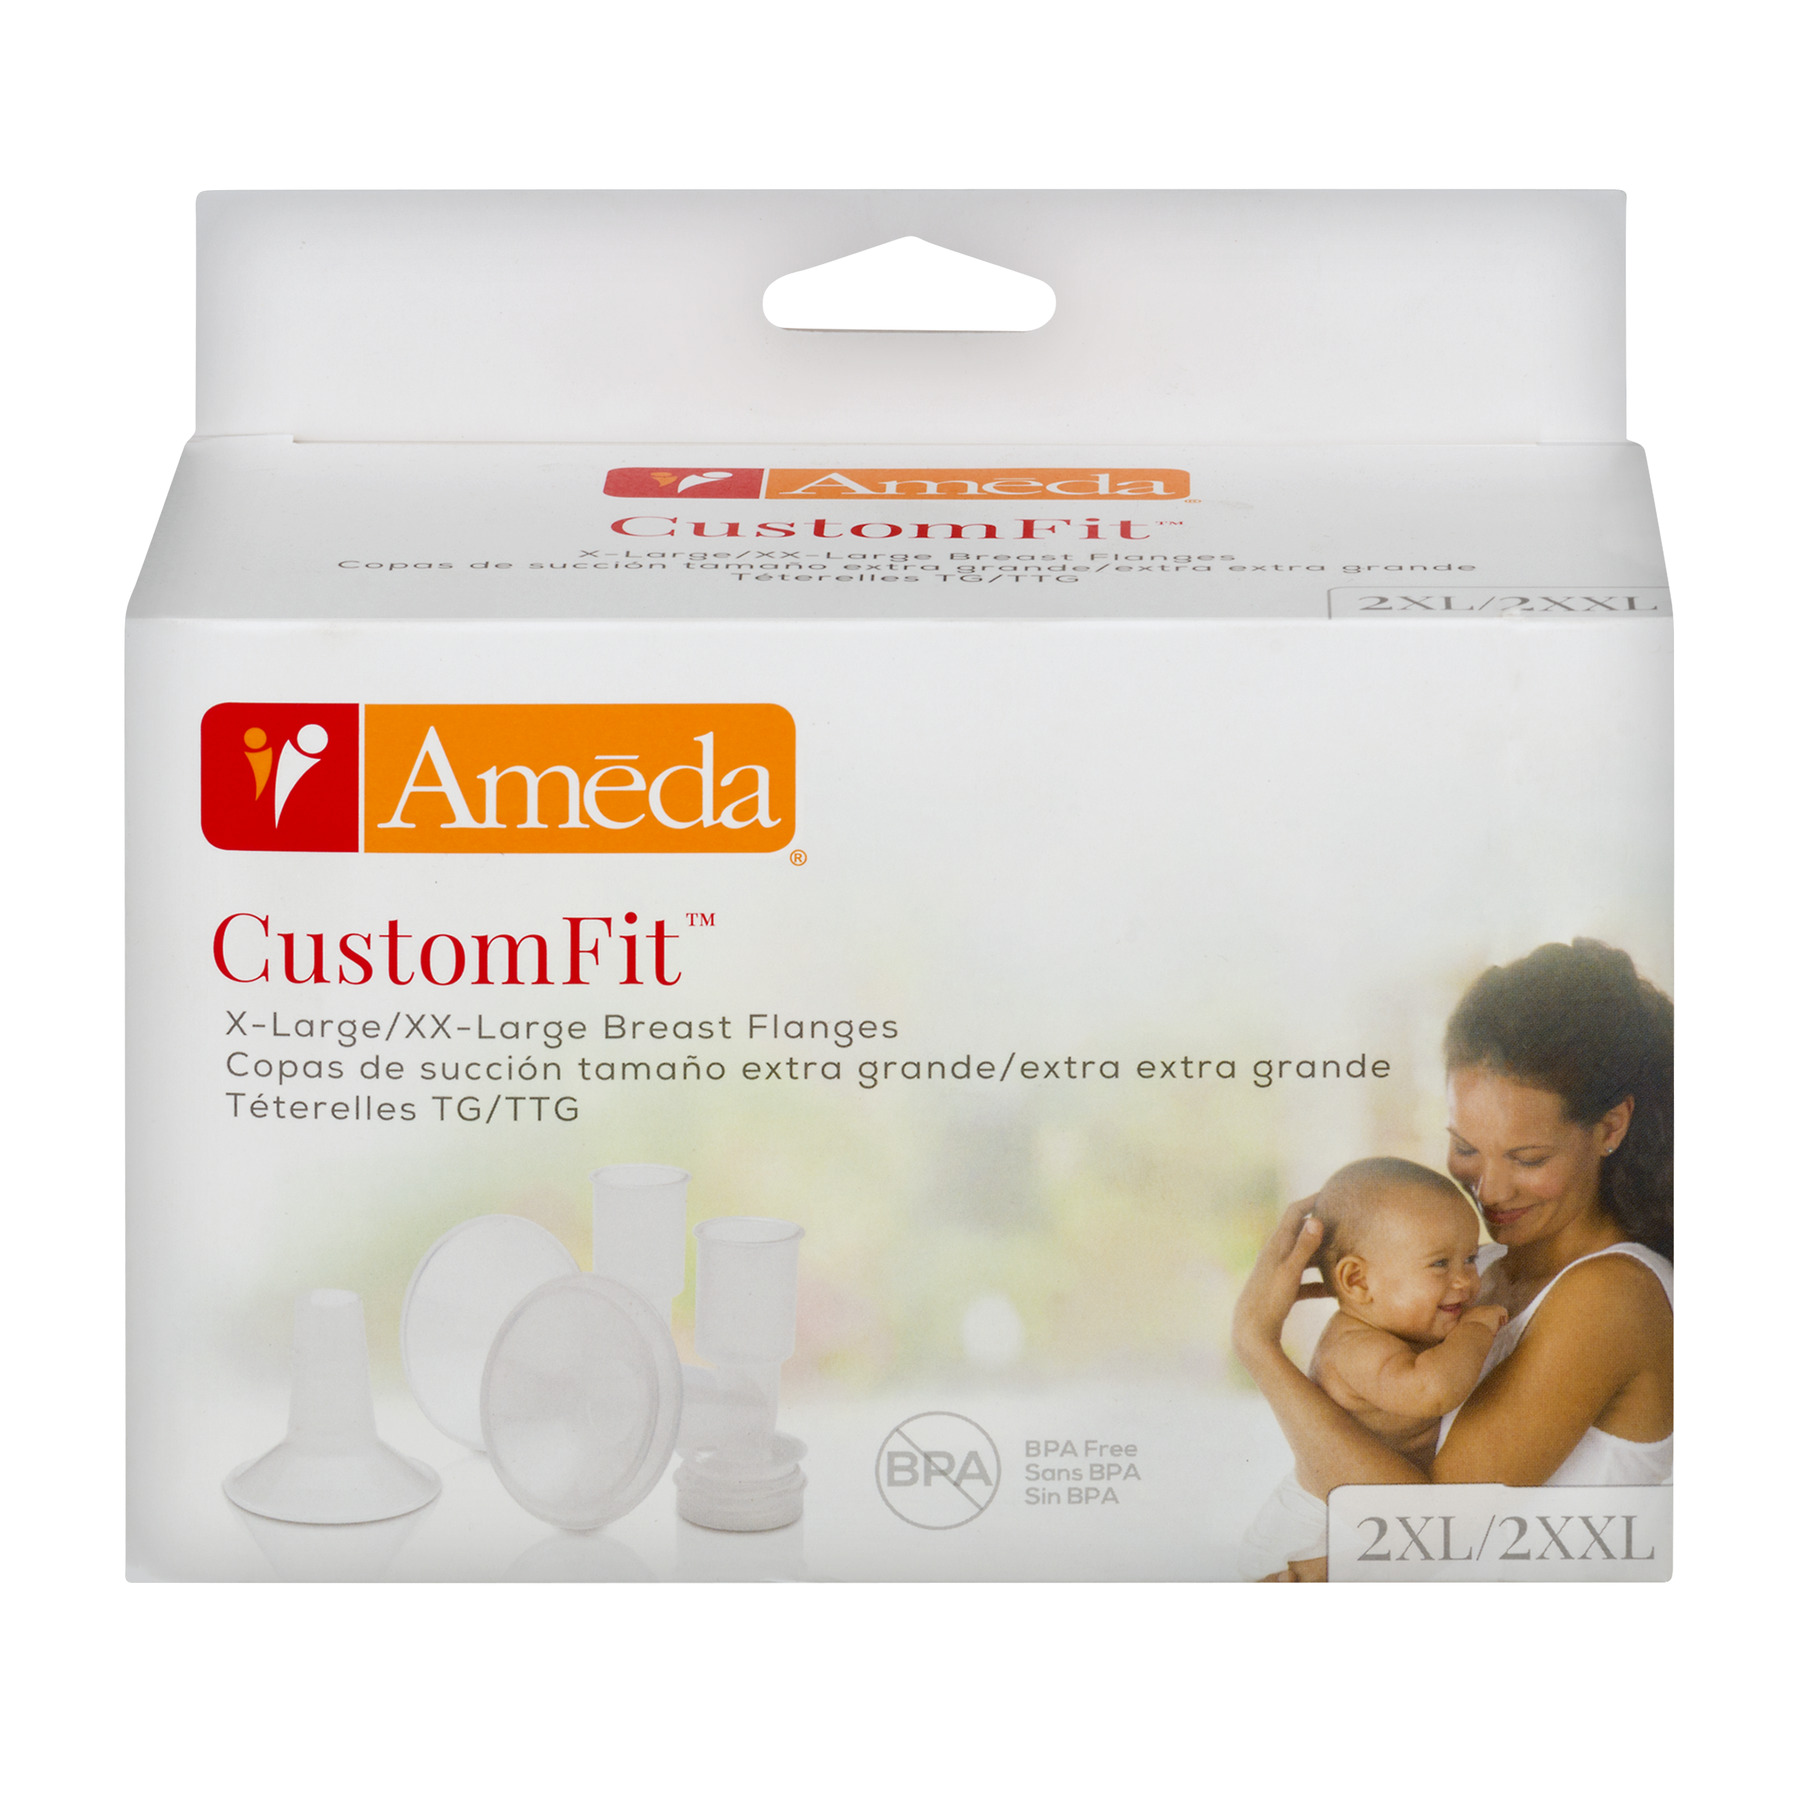 Ameda CustomFit Breast Flanges X-Large/XX-Large - 4 CT4.0 CT